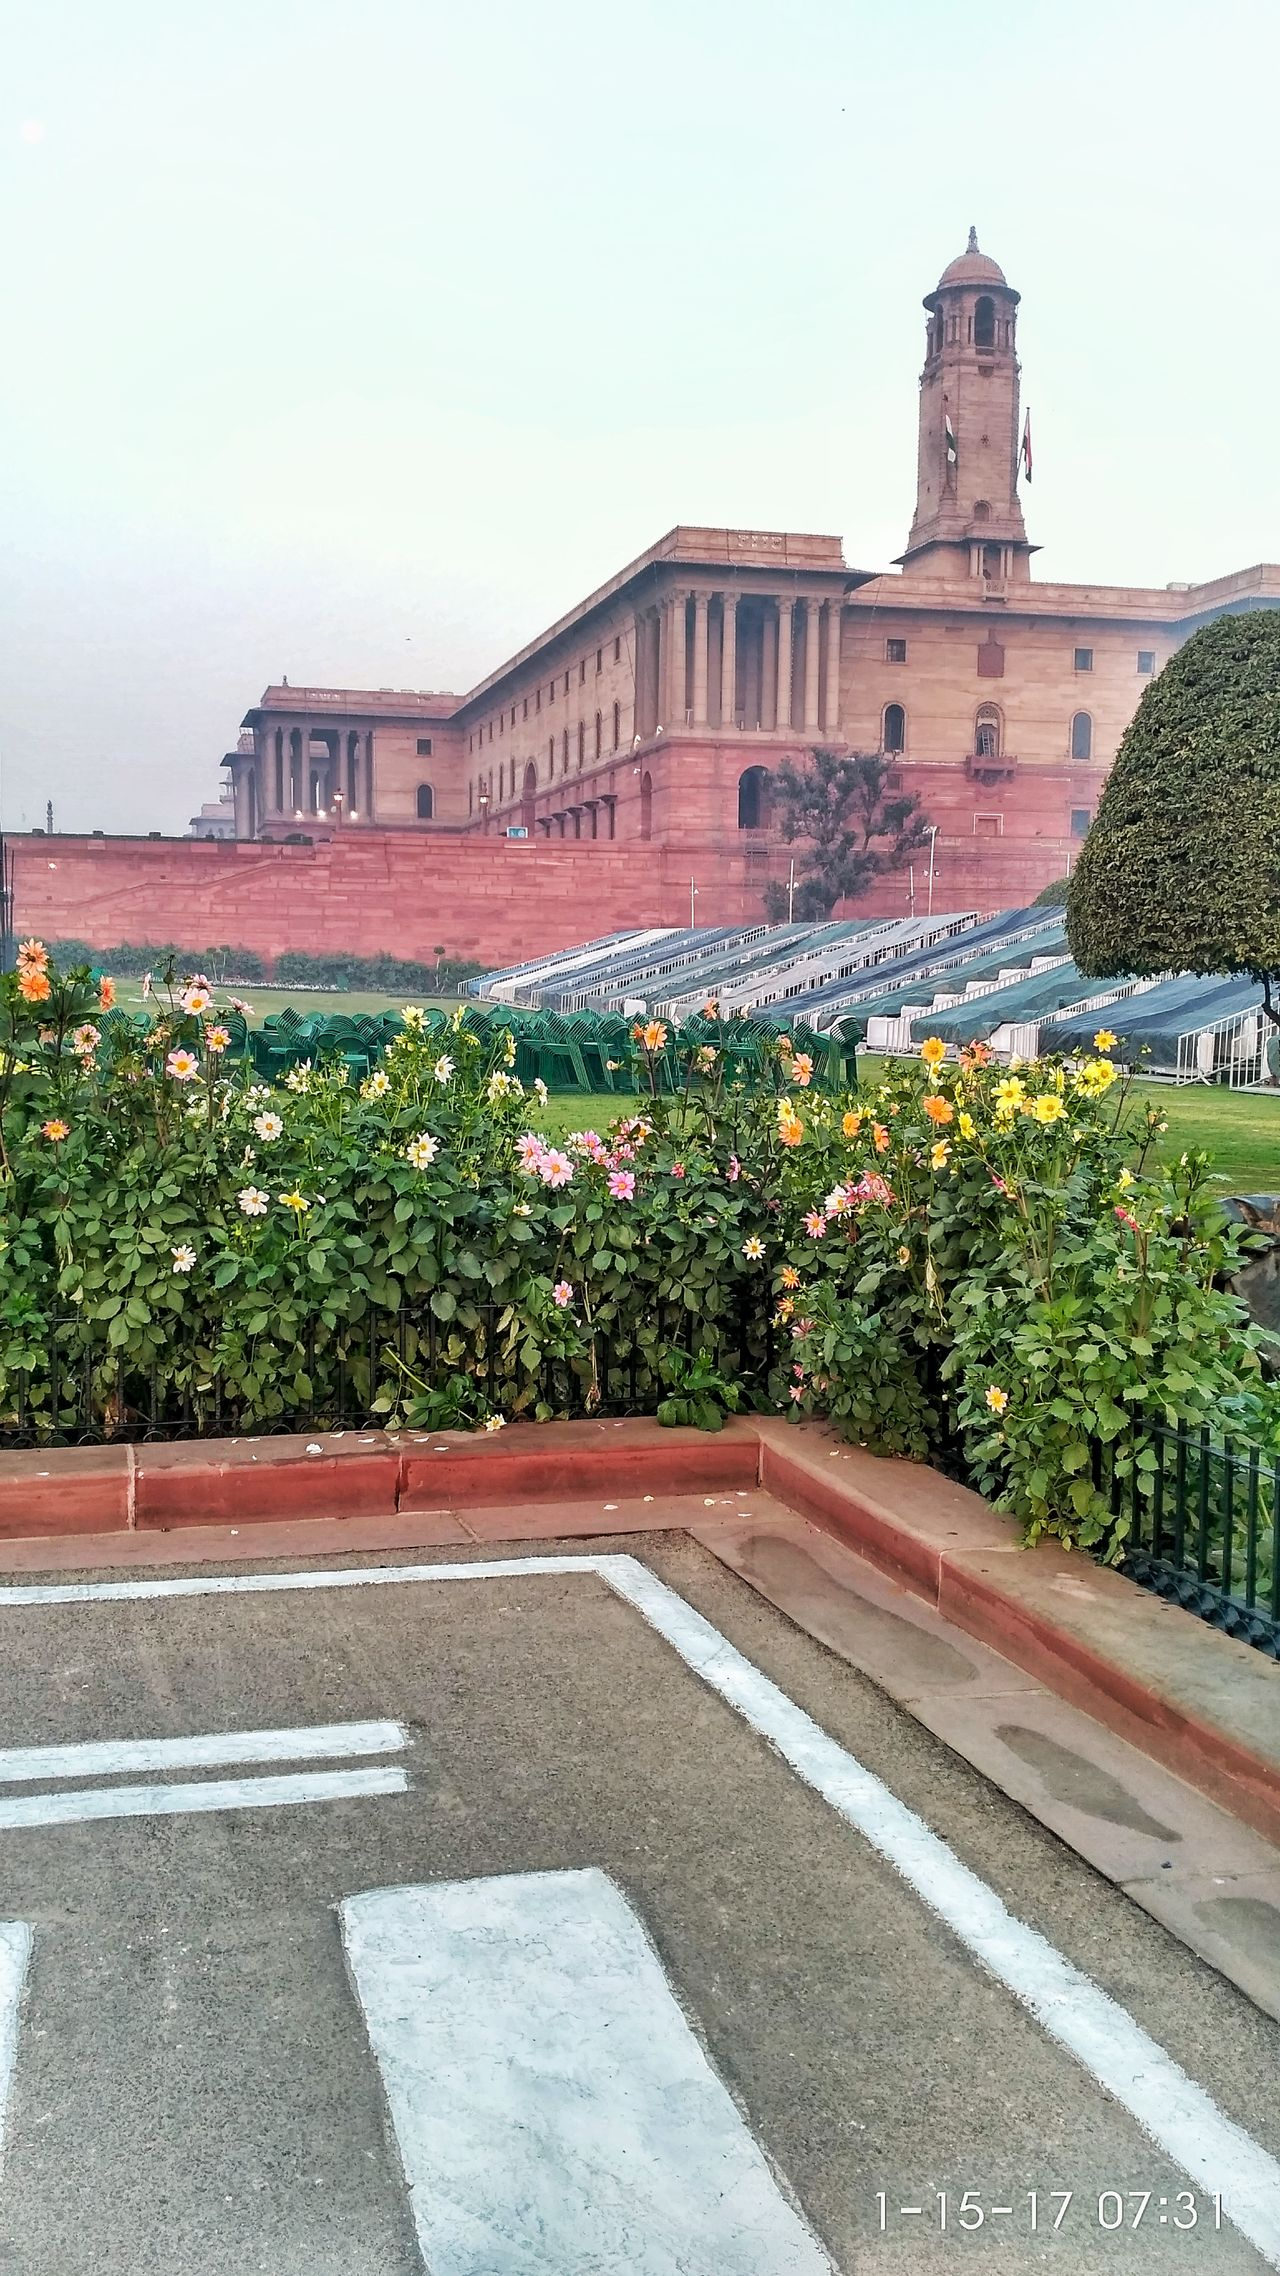 Building Exterior Architecture Built Structure Outdoors No People Flower Nature Rashtrapati Bhavan, Central Secretariat. Rashtrapatibhawan Nature Outdoor Photography Delhidiaries Monument Delhiphotographers Delhite Morning Morning View Architecture Indian Beauty In Nature Prettybeautiful Flowerphotography Sky Tourism Indianphotography